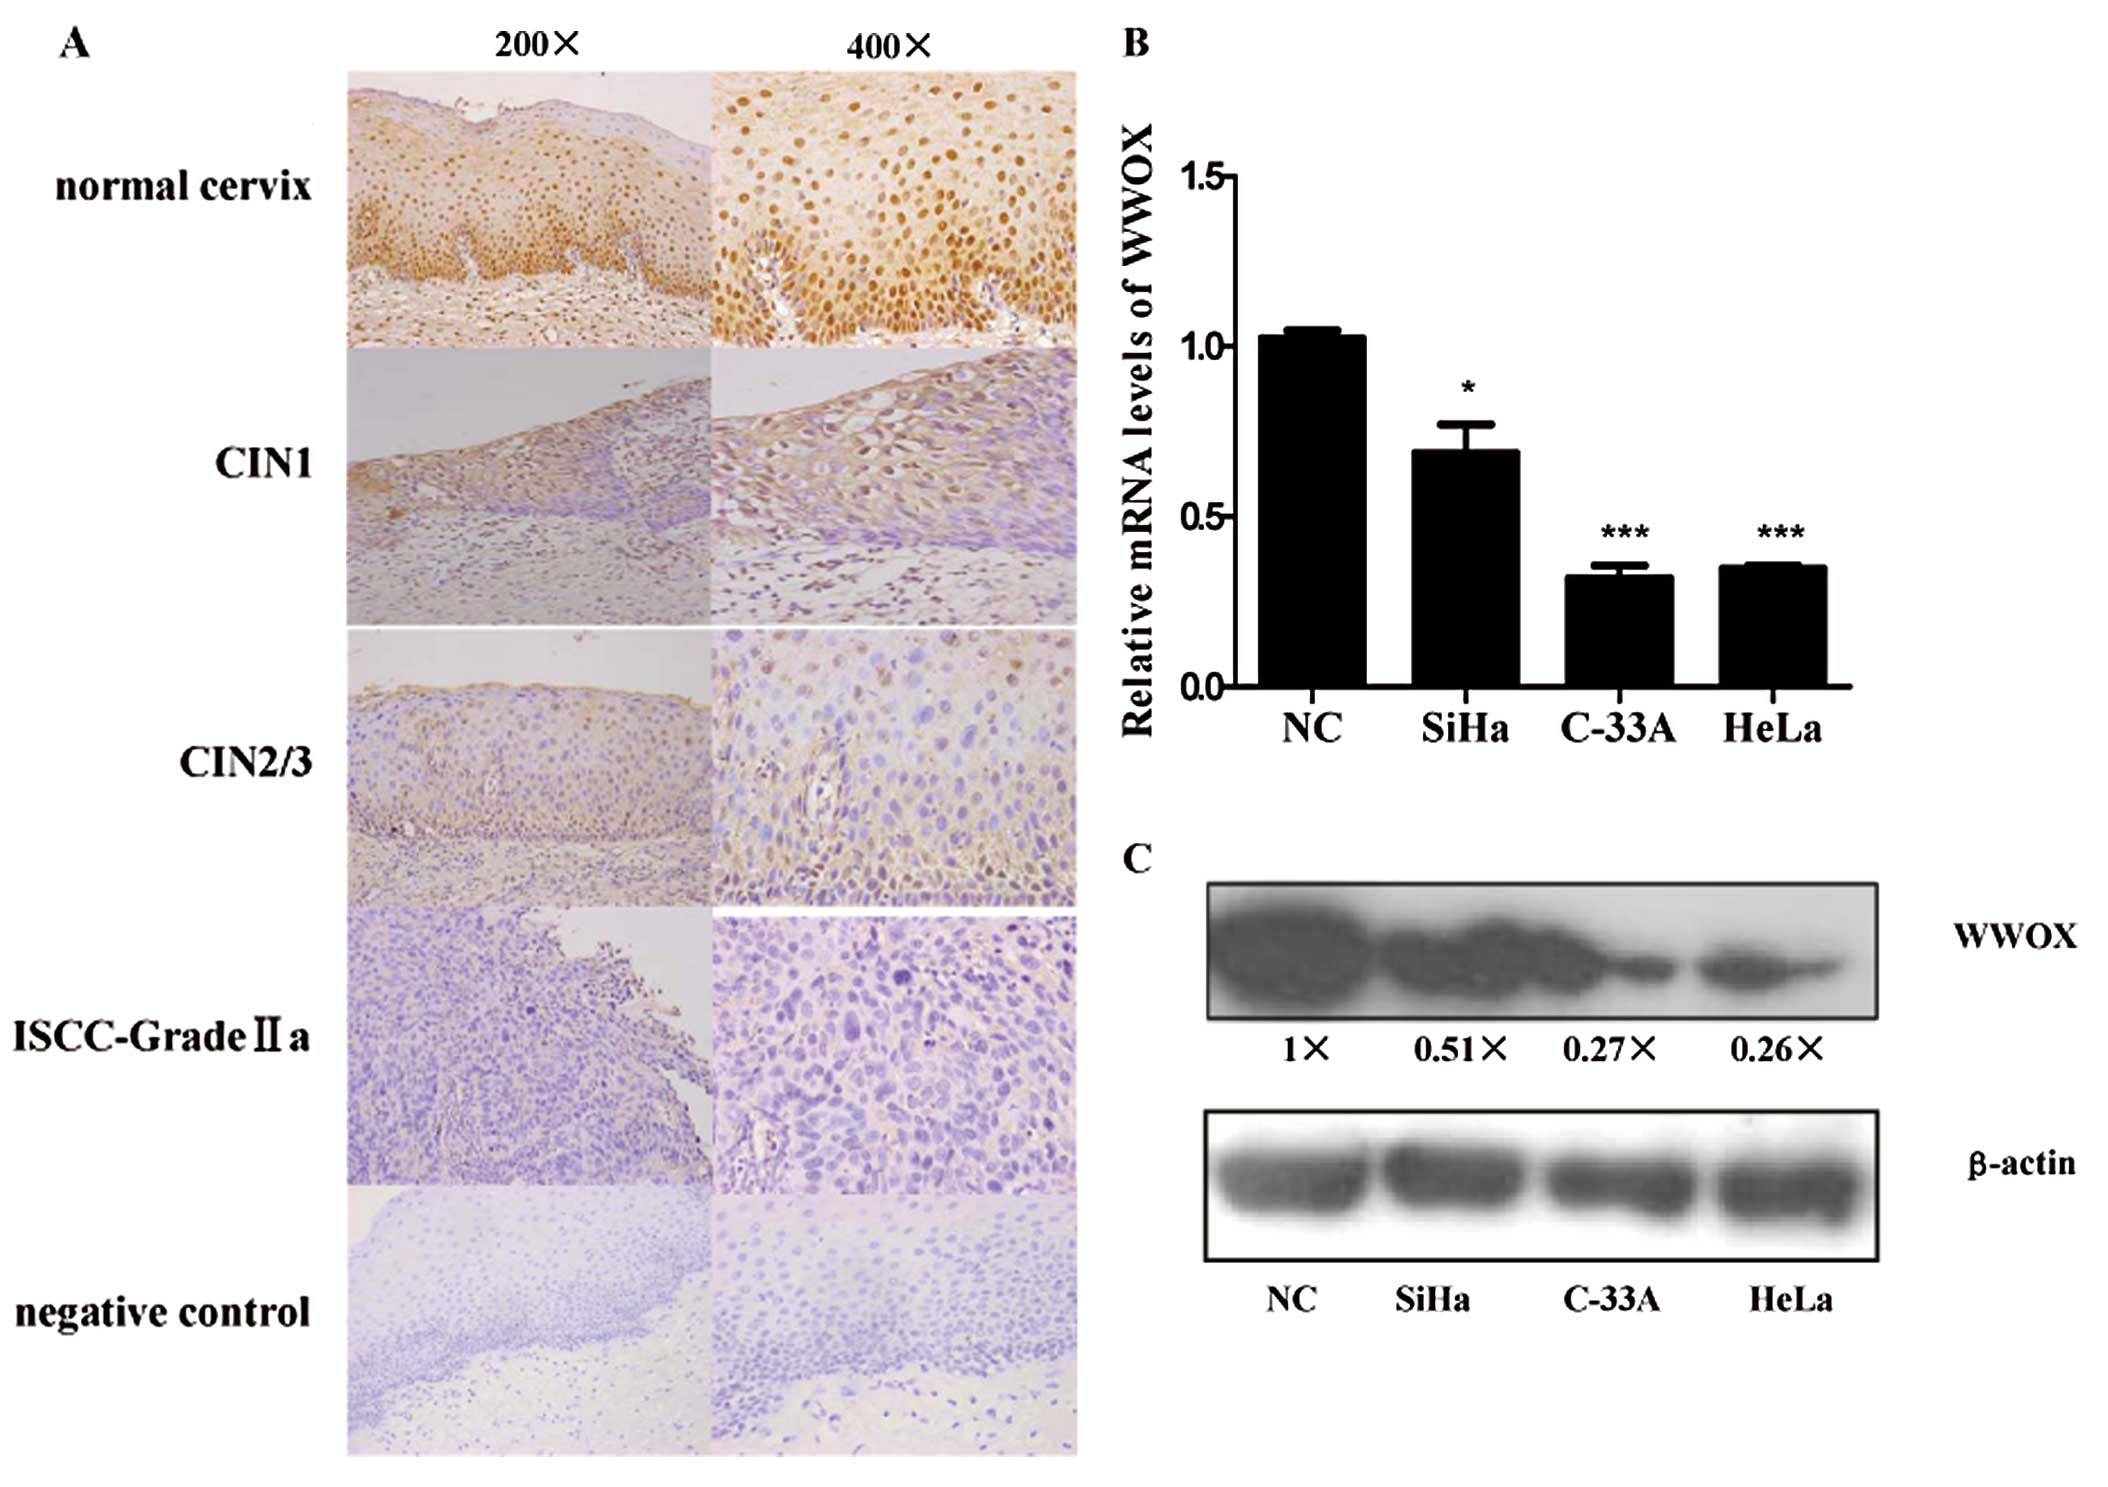 wwox induces apoptosis and inhibits proliferation in